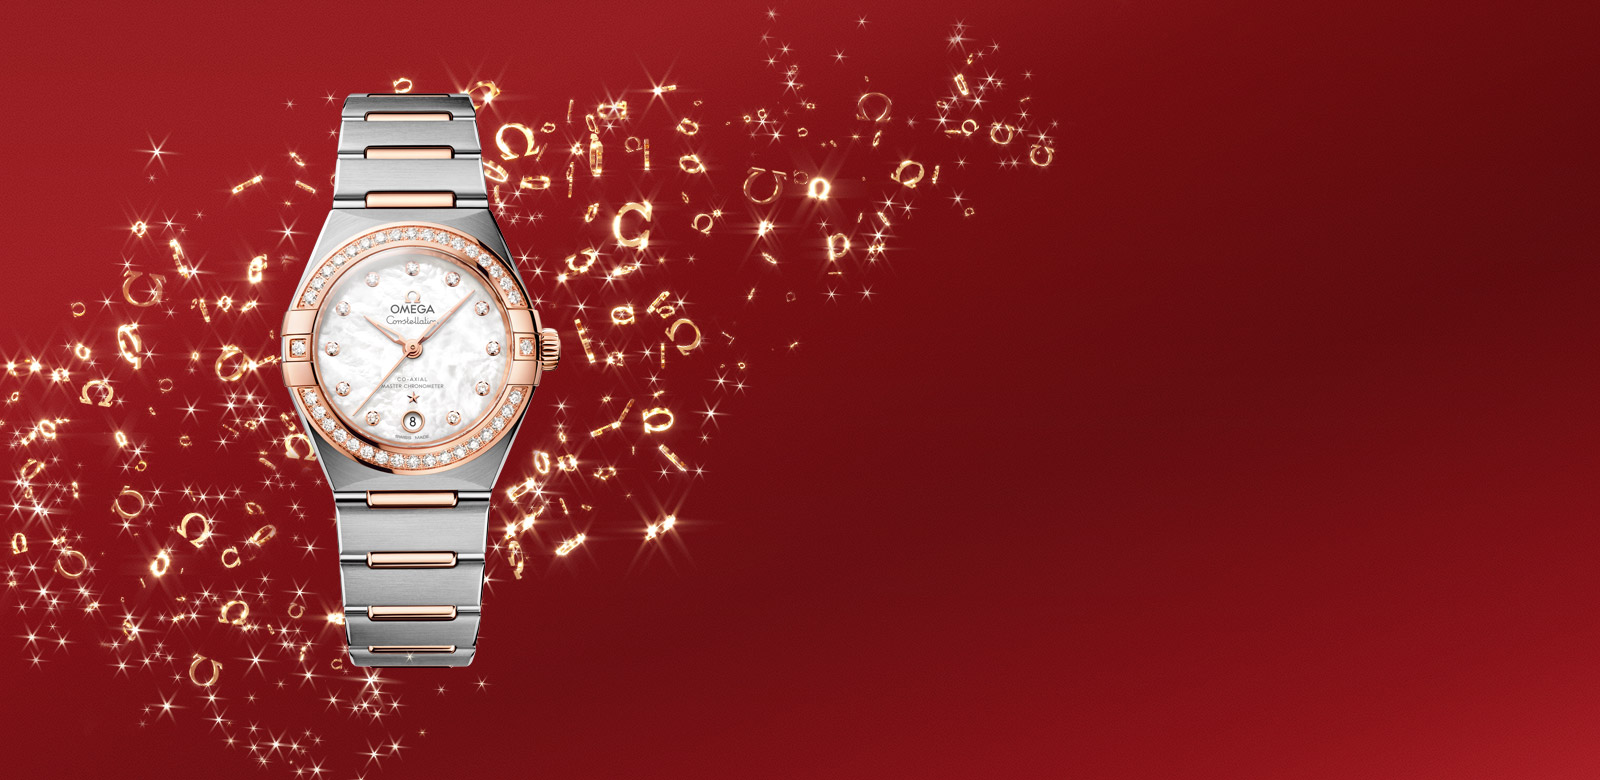 OMEGA®: Swiss Luxury Watches Since 1848 Carousel 2 - 82173